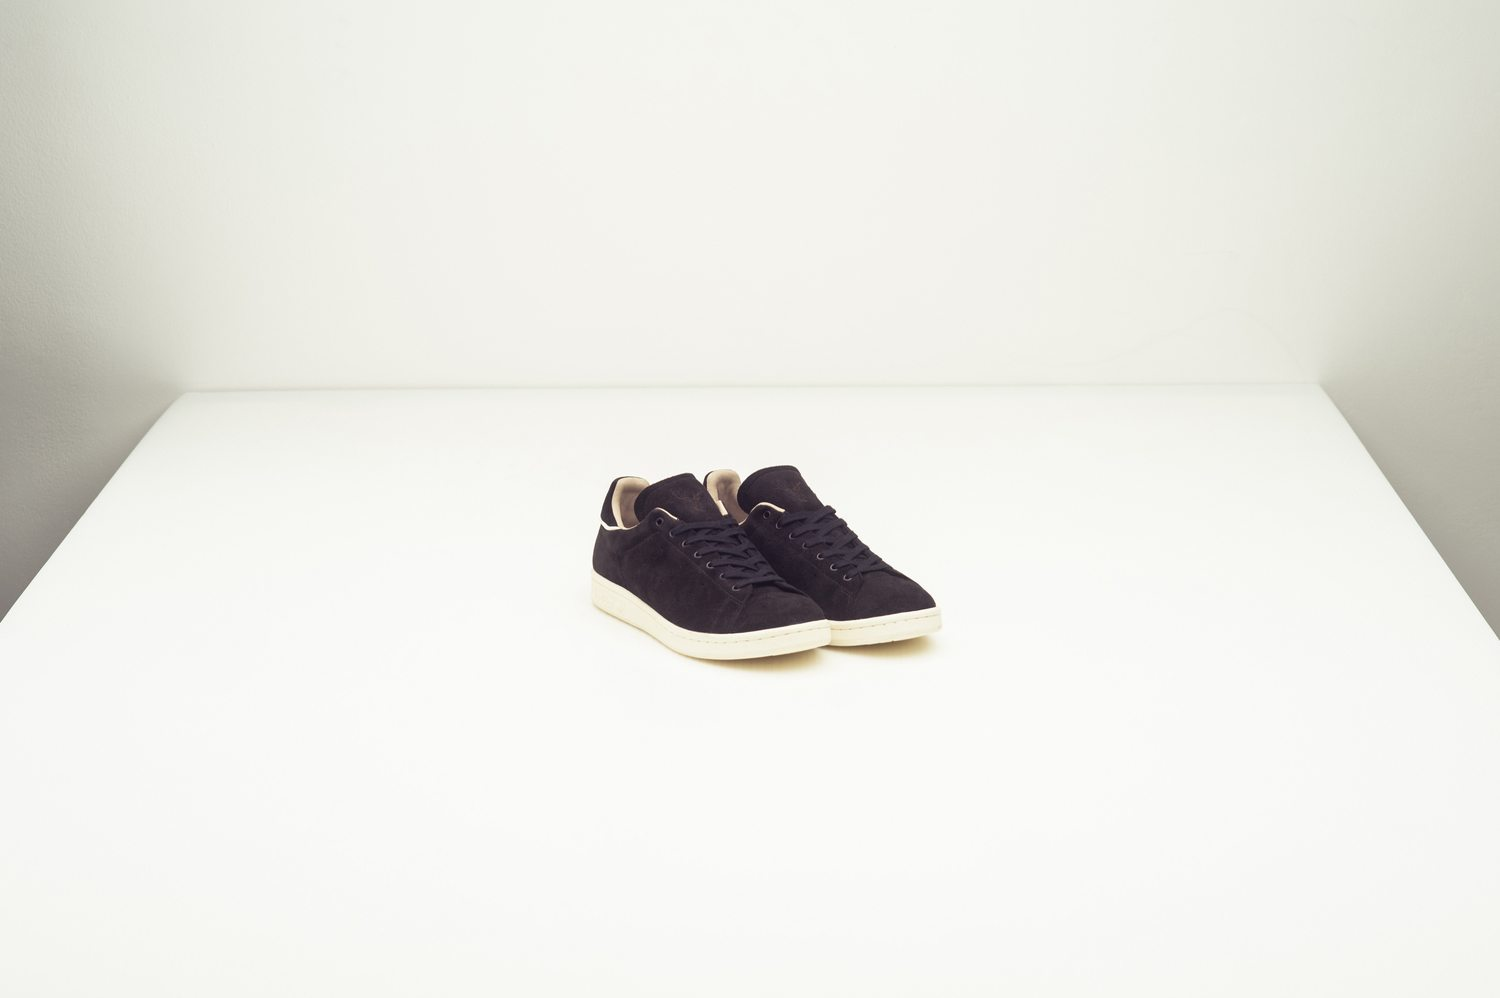 adidas originals made in germany pack 8